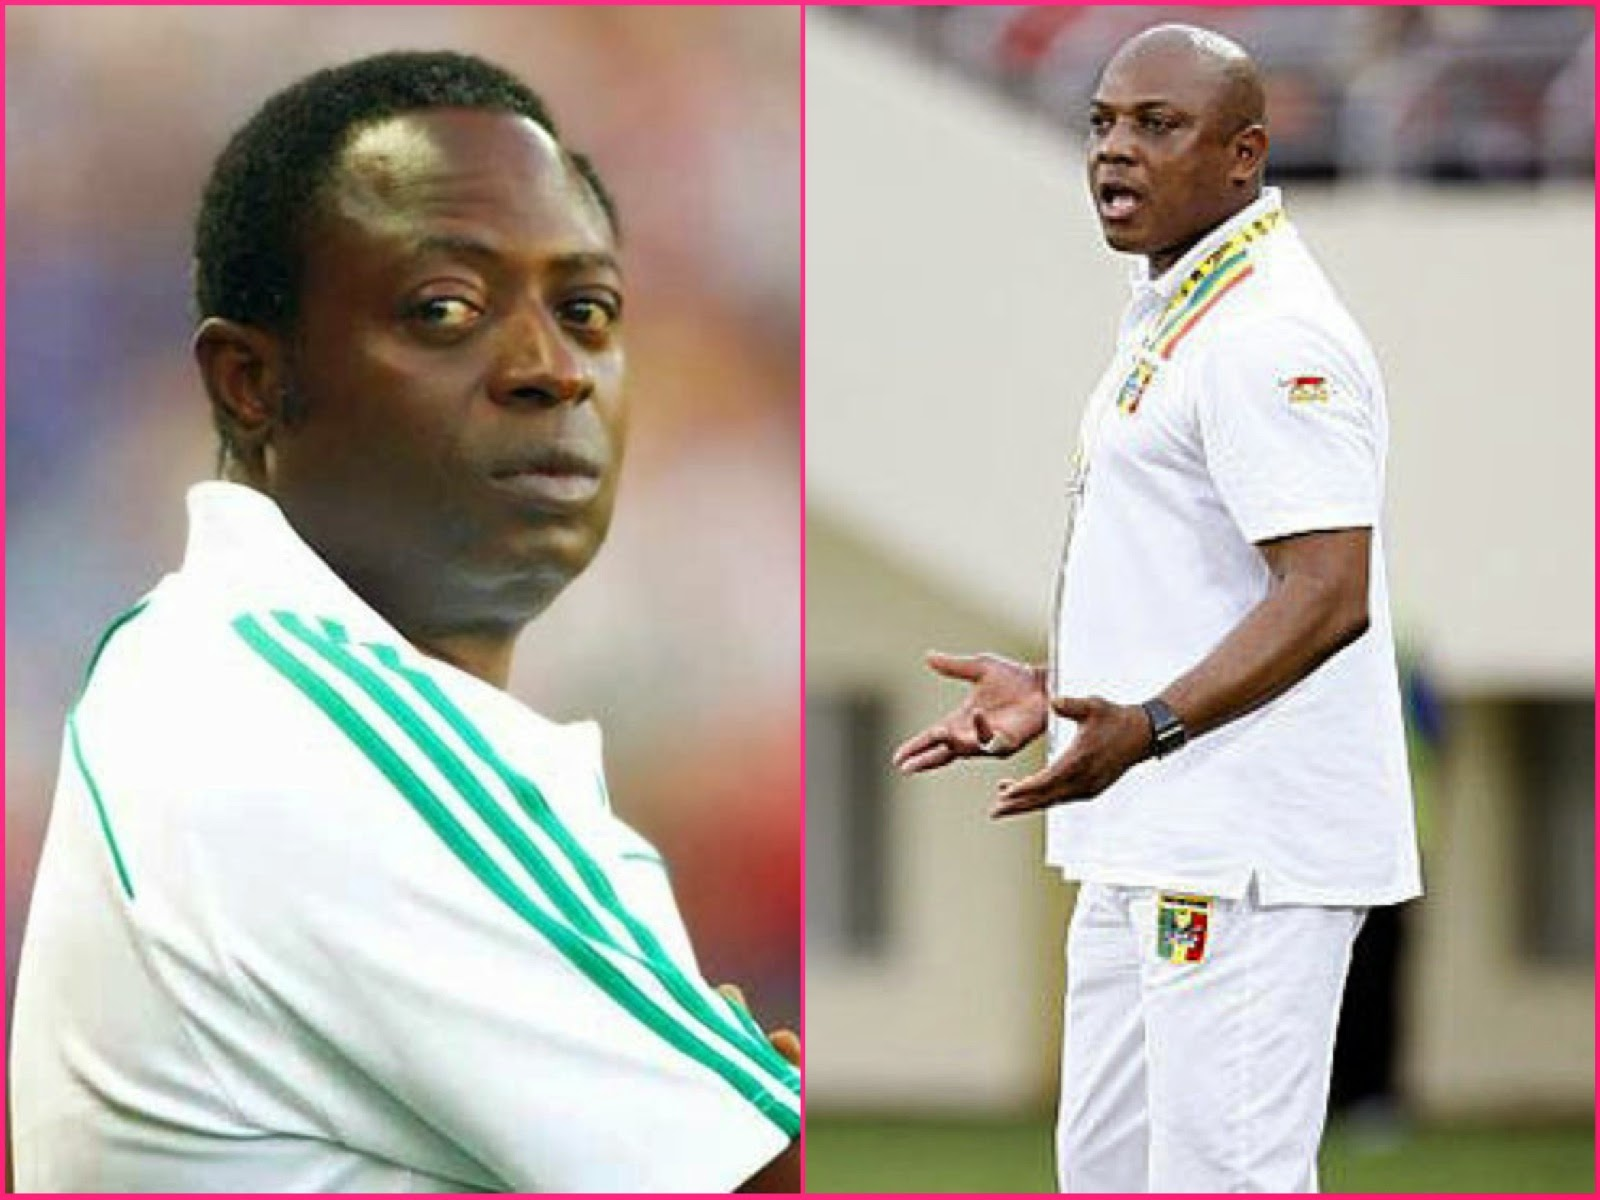 Shuaib Amodu, super eagles coach and Keshi